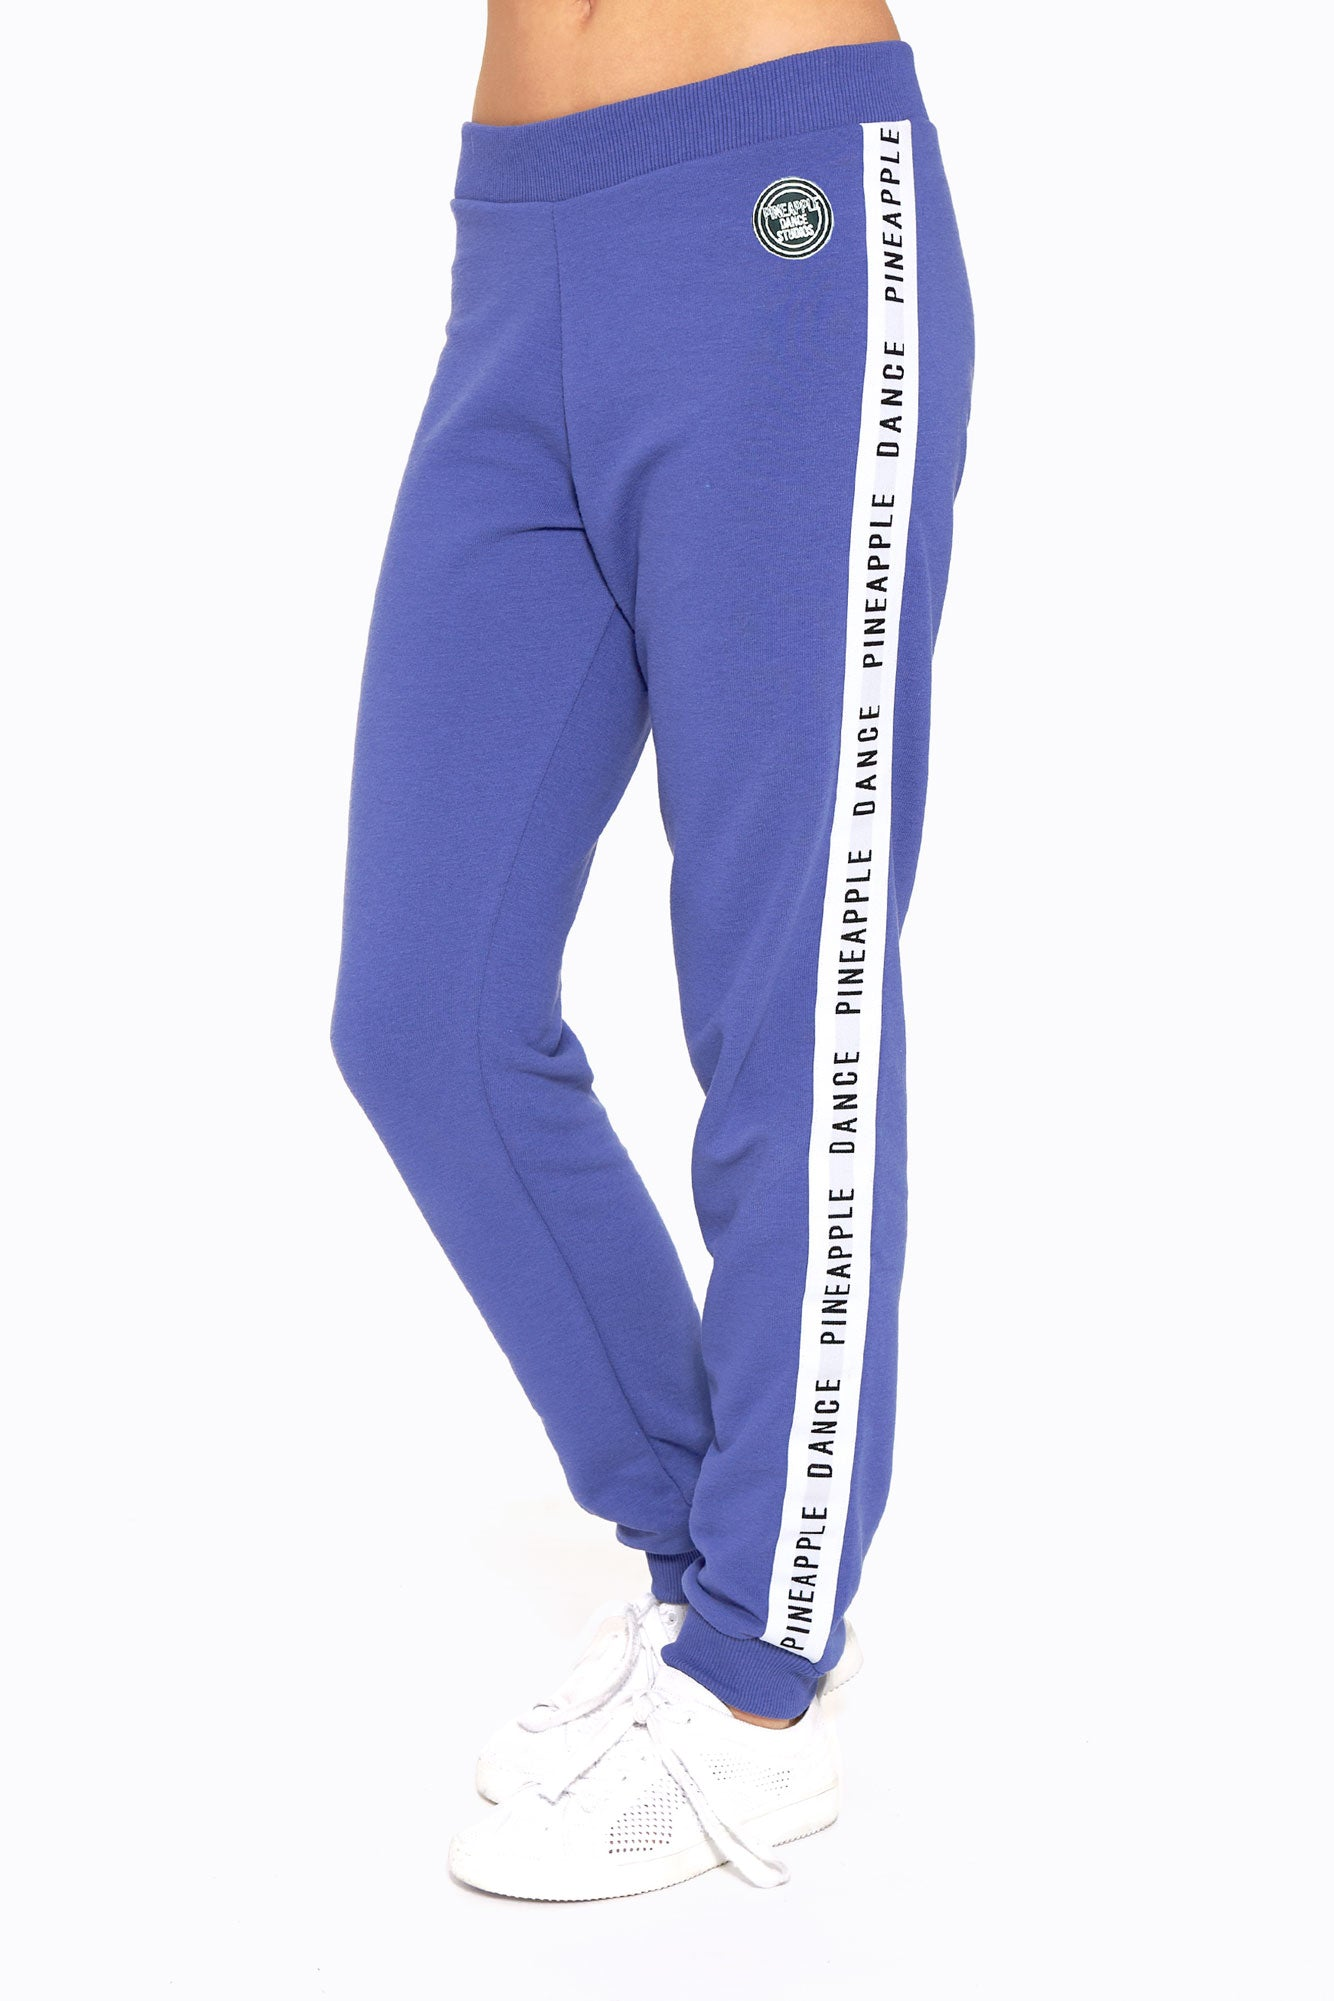 Pineapple Dance Girls' Blue Denim Stripe Jacquard Joggers PT1702CD1